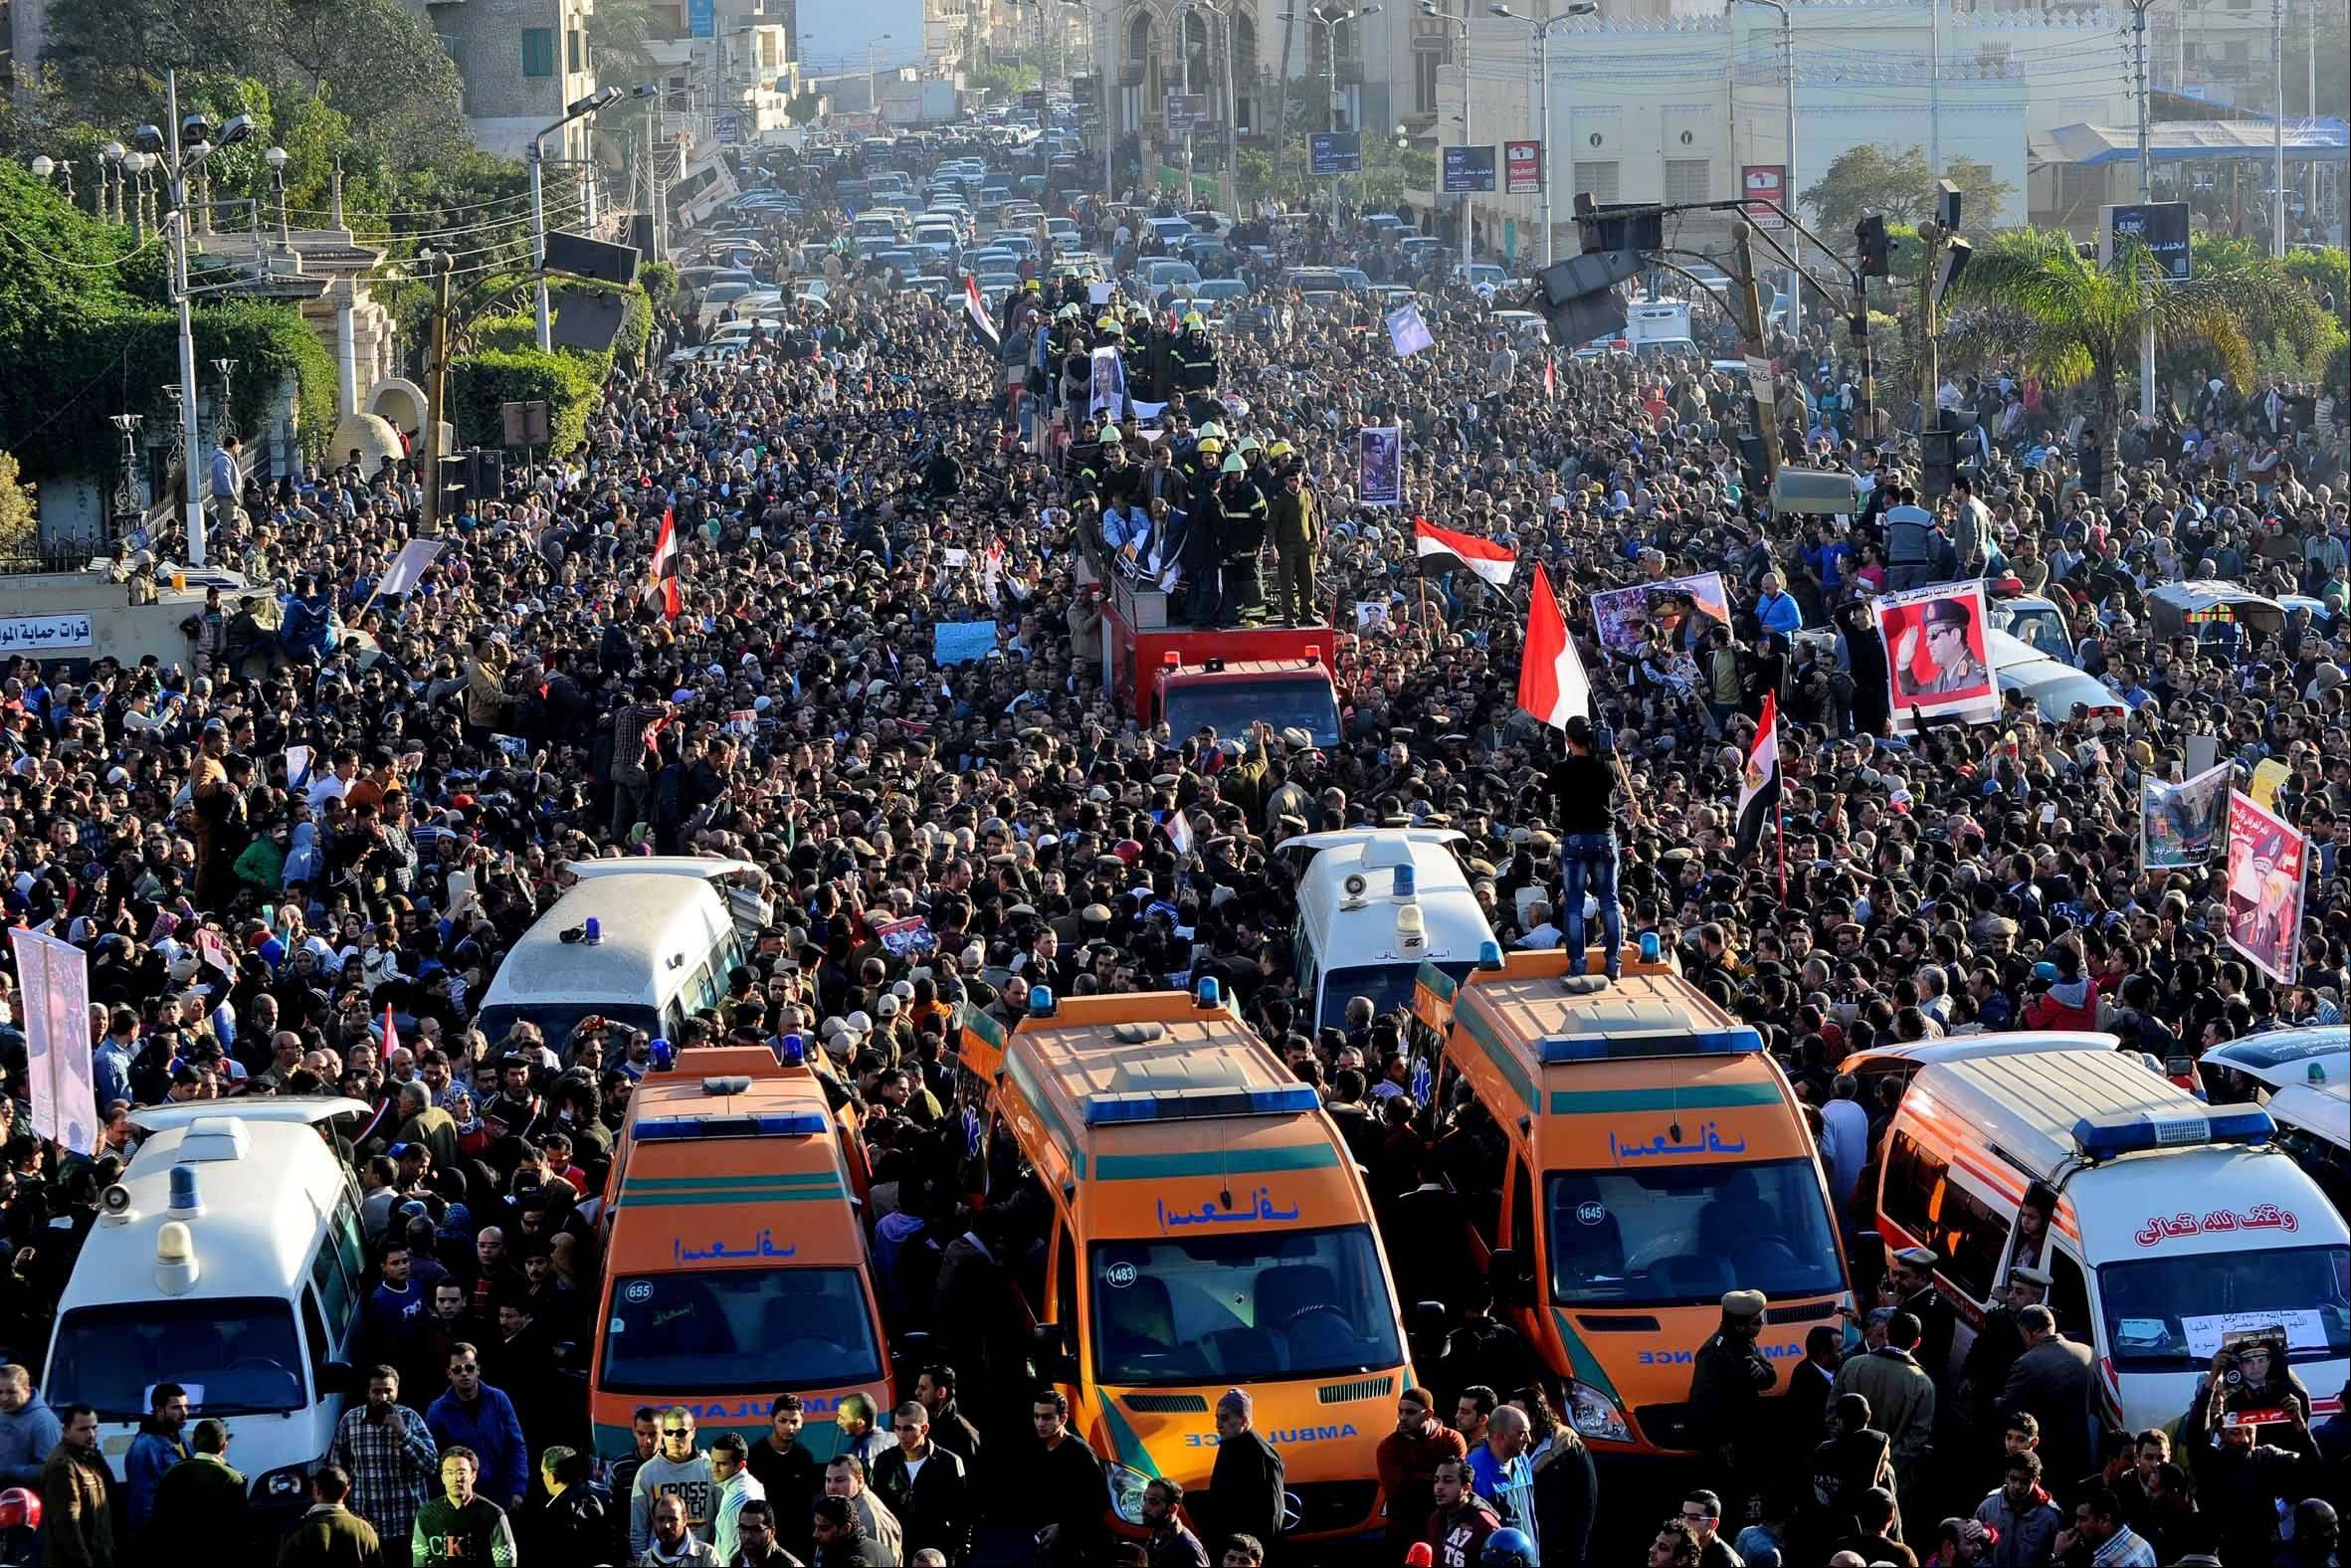 Egyptians on Tuesday attend the funeral of a dozen police officers and a civilian killed from an explosion at a police headquarters, in the Nile Delta city of Mansoura, 110 kilometers (70 miles) north of Cairo, Egypt. Egypt�s security authorities warned Thursday that their forces will take an even tougher line on protests by the Muslim Brotherhood.